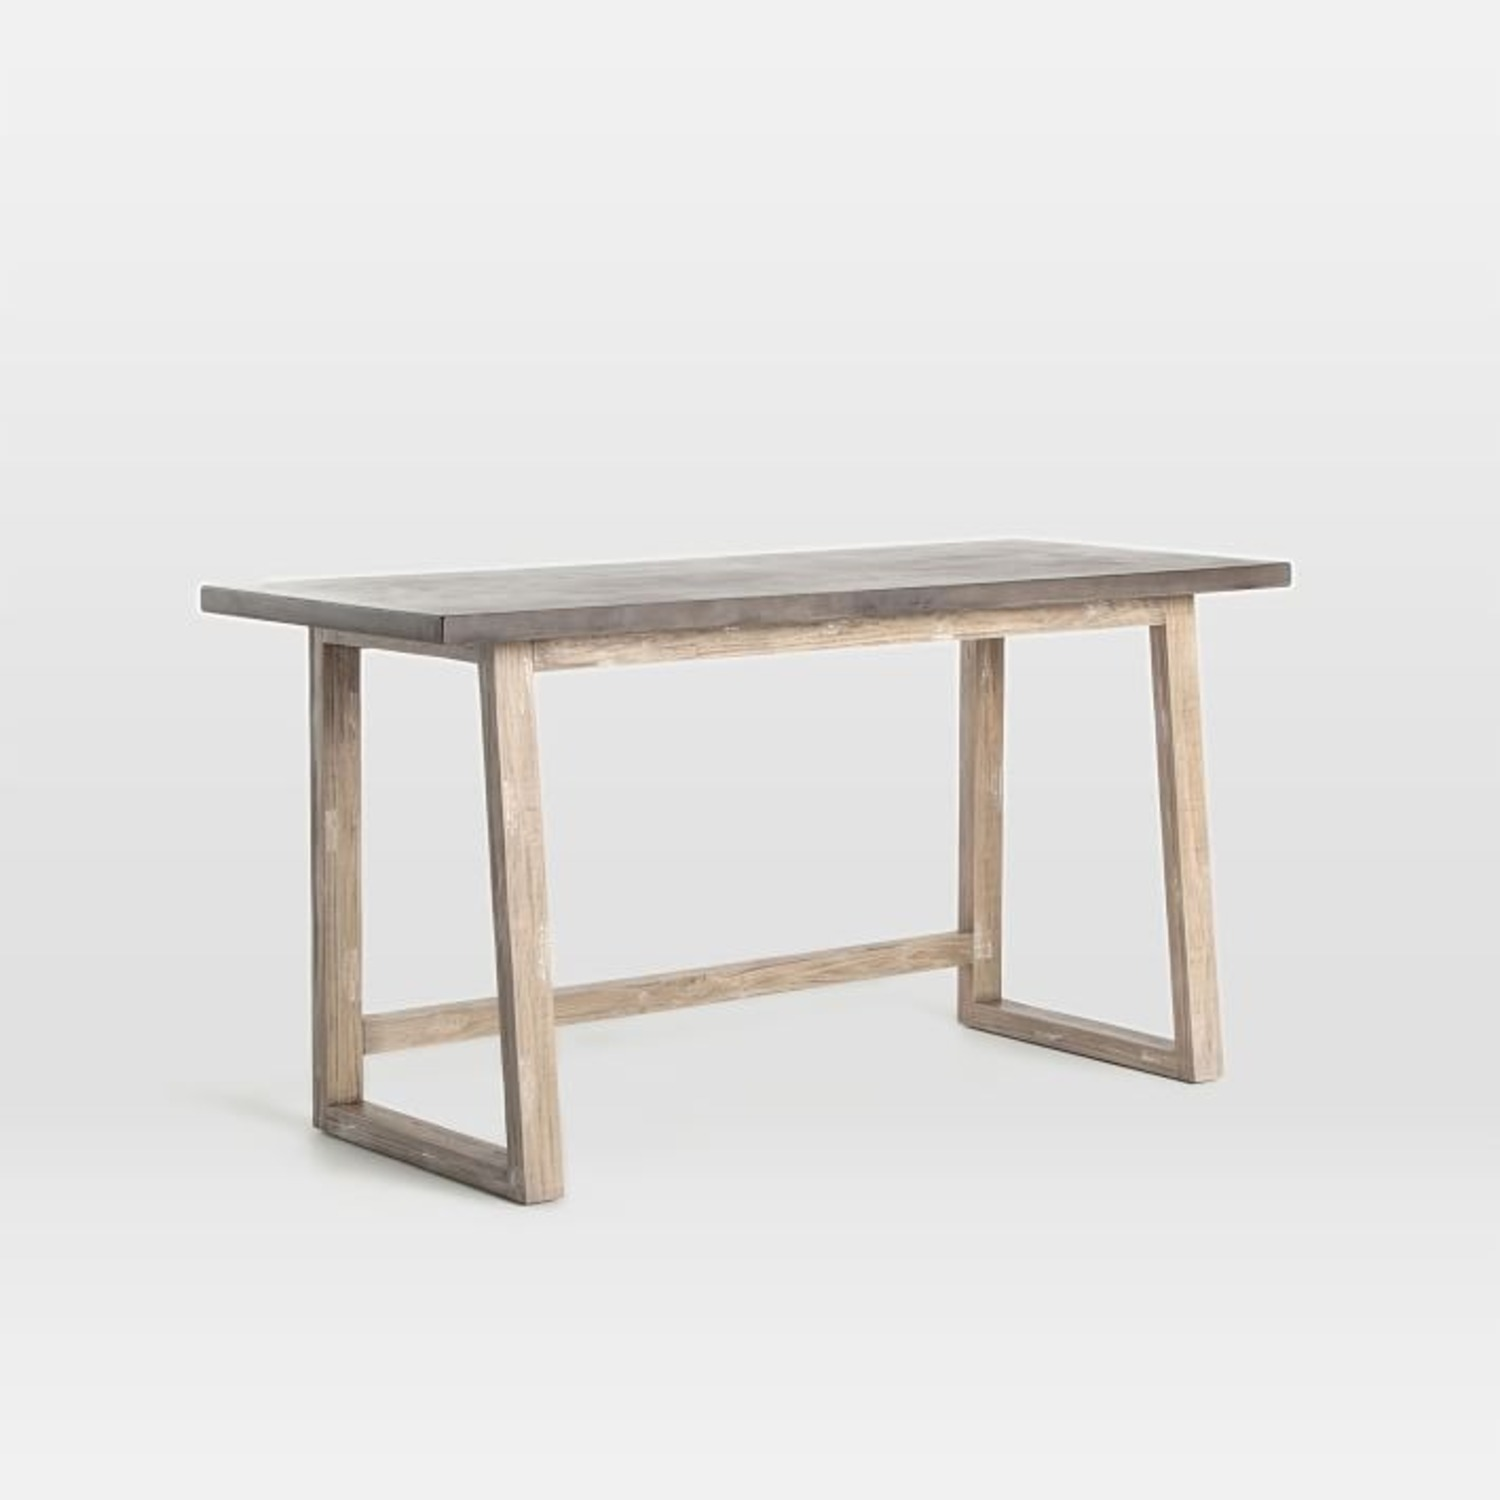 West Elm Concrete-Topped Mixed Wood Desk - image-1